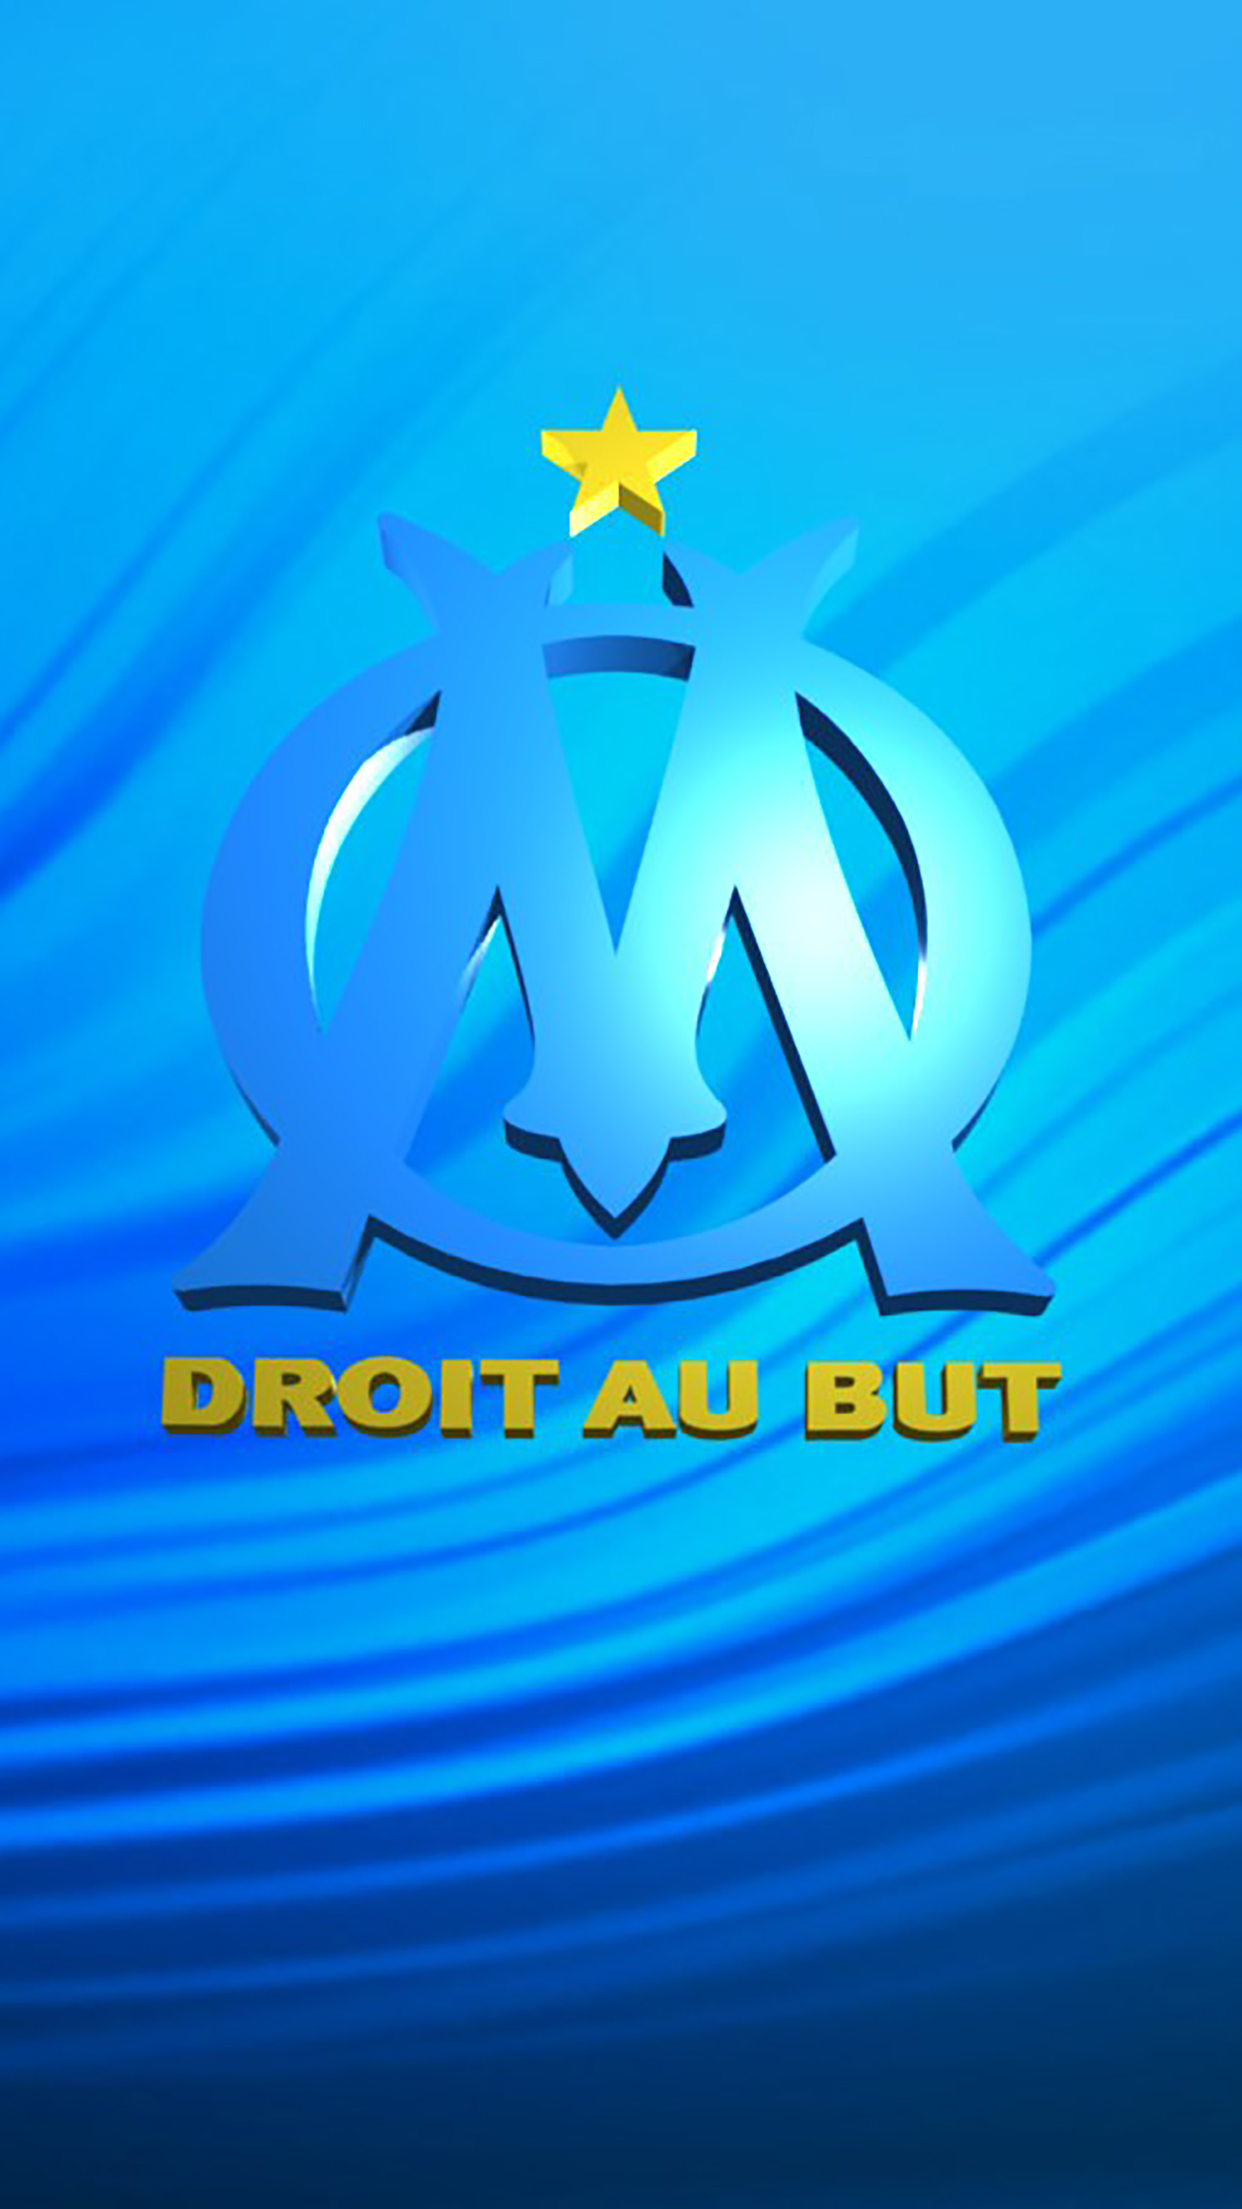 Anime Girl Wallpapers Phone Olympique De Marseille Logo 1 Wallpaper For Iphone X 8